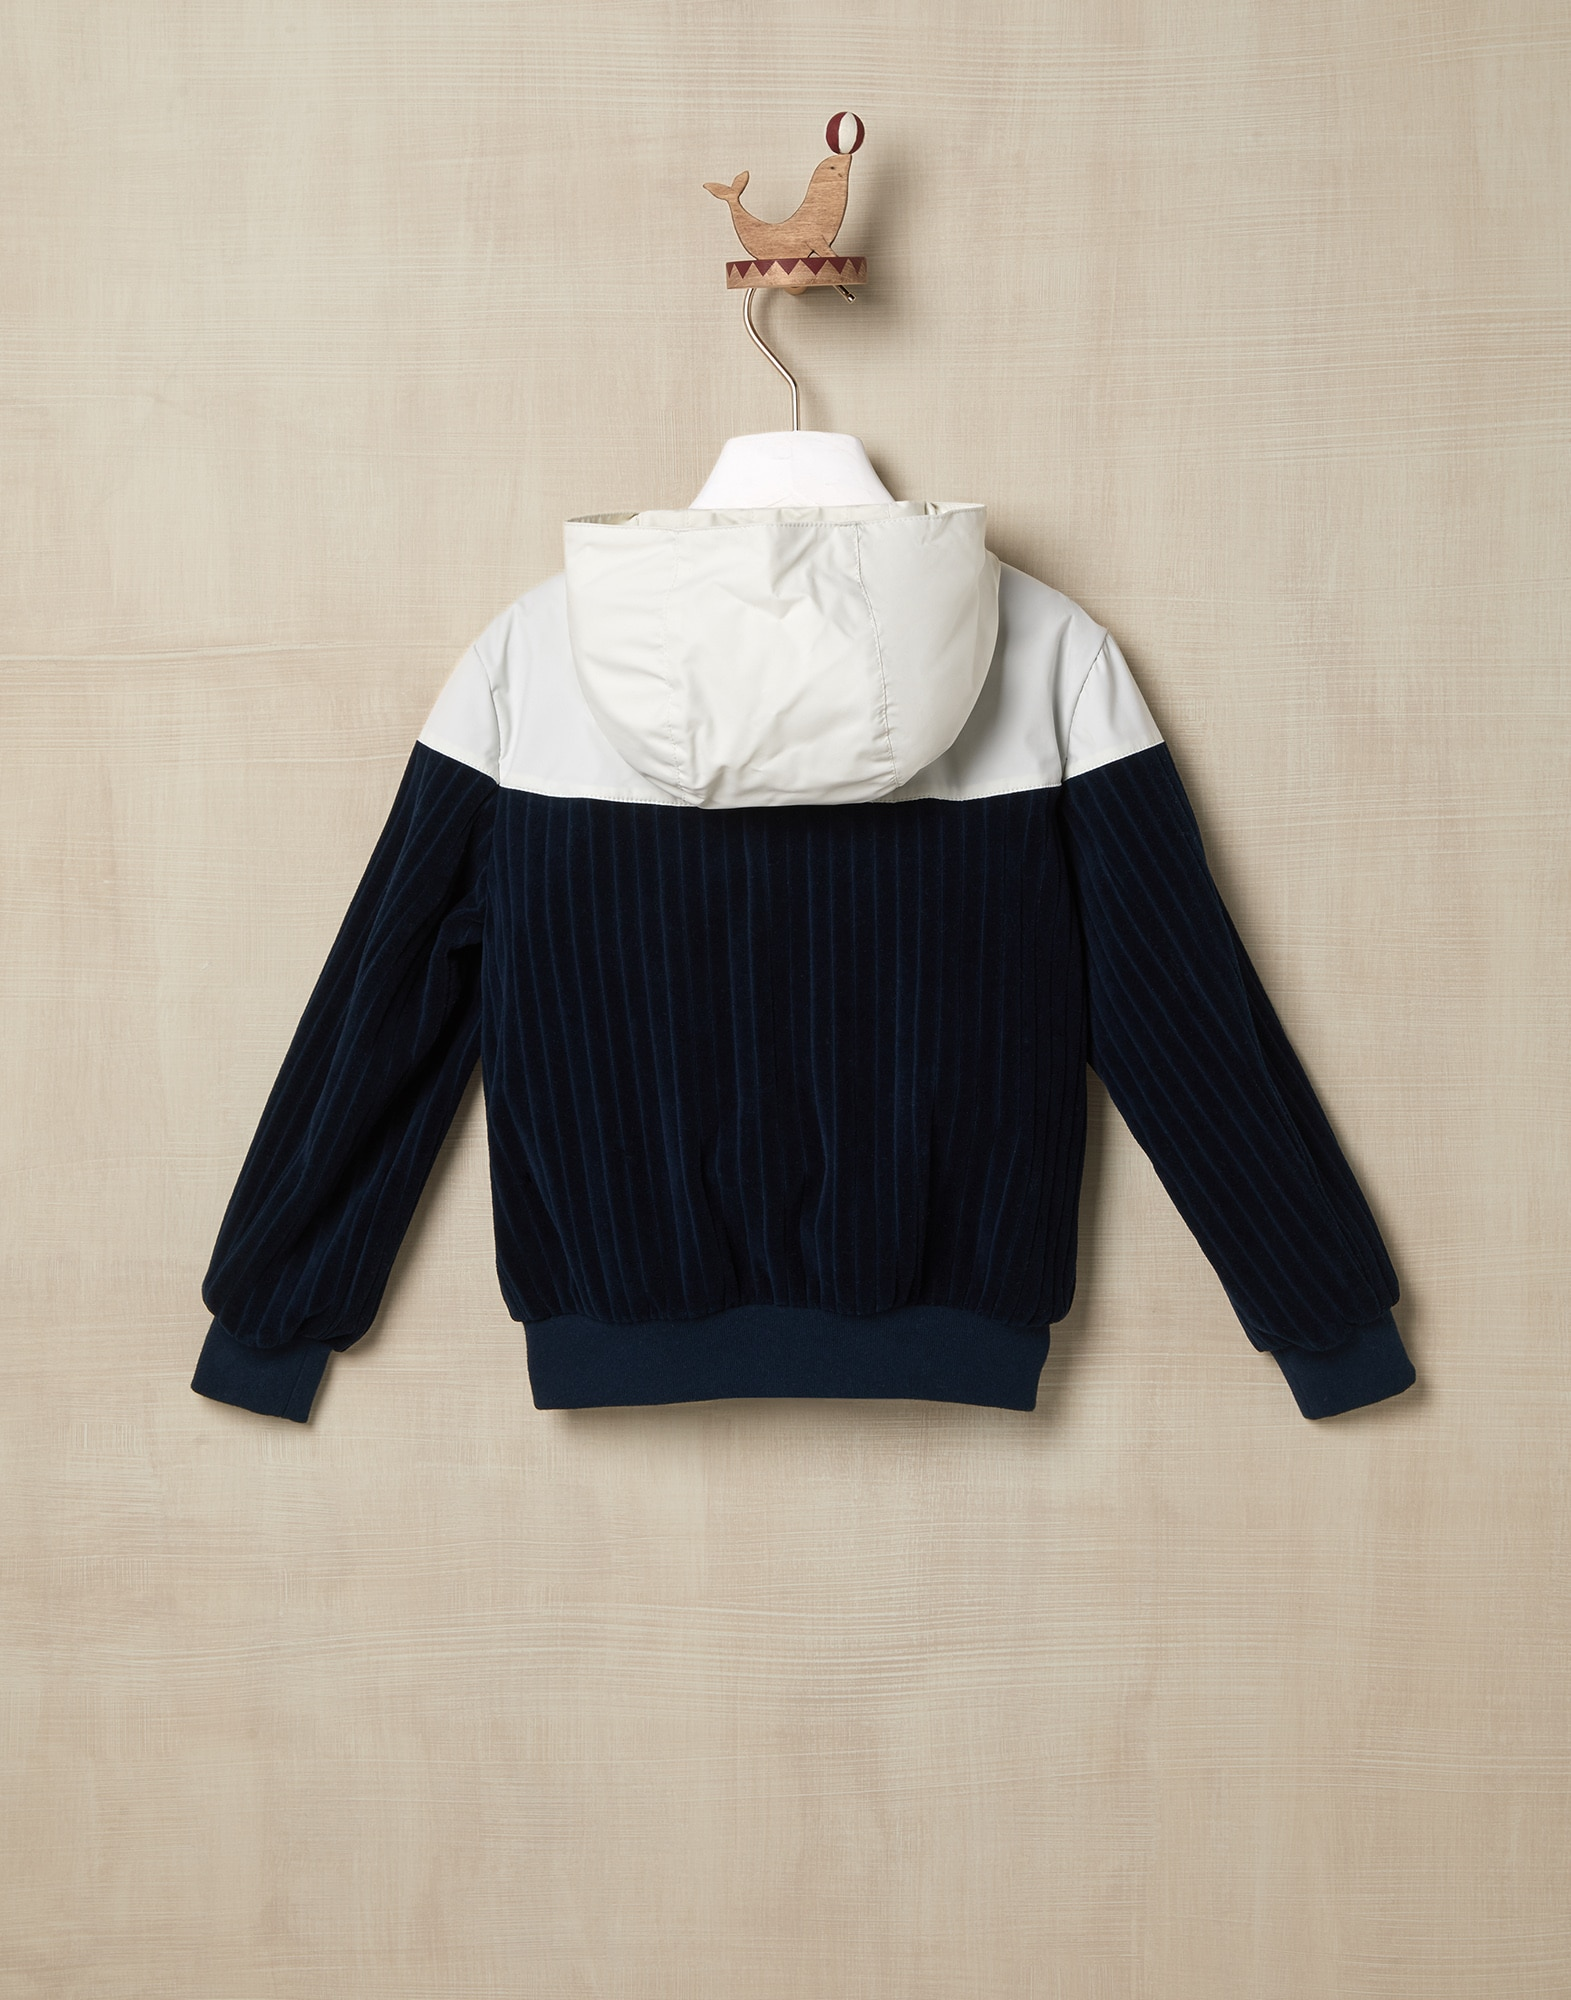 Topwear Navy Blue Boy 1 - Brunello Cucinelli